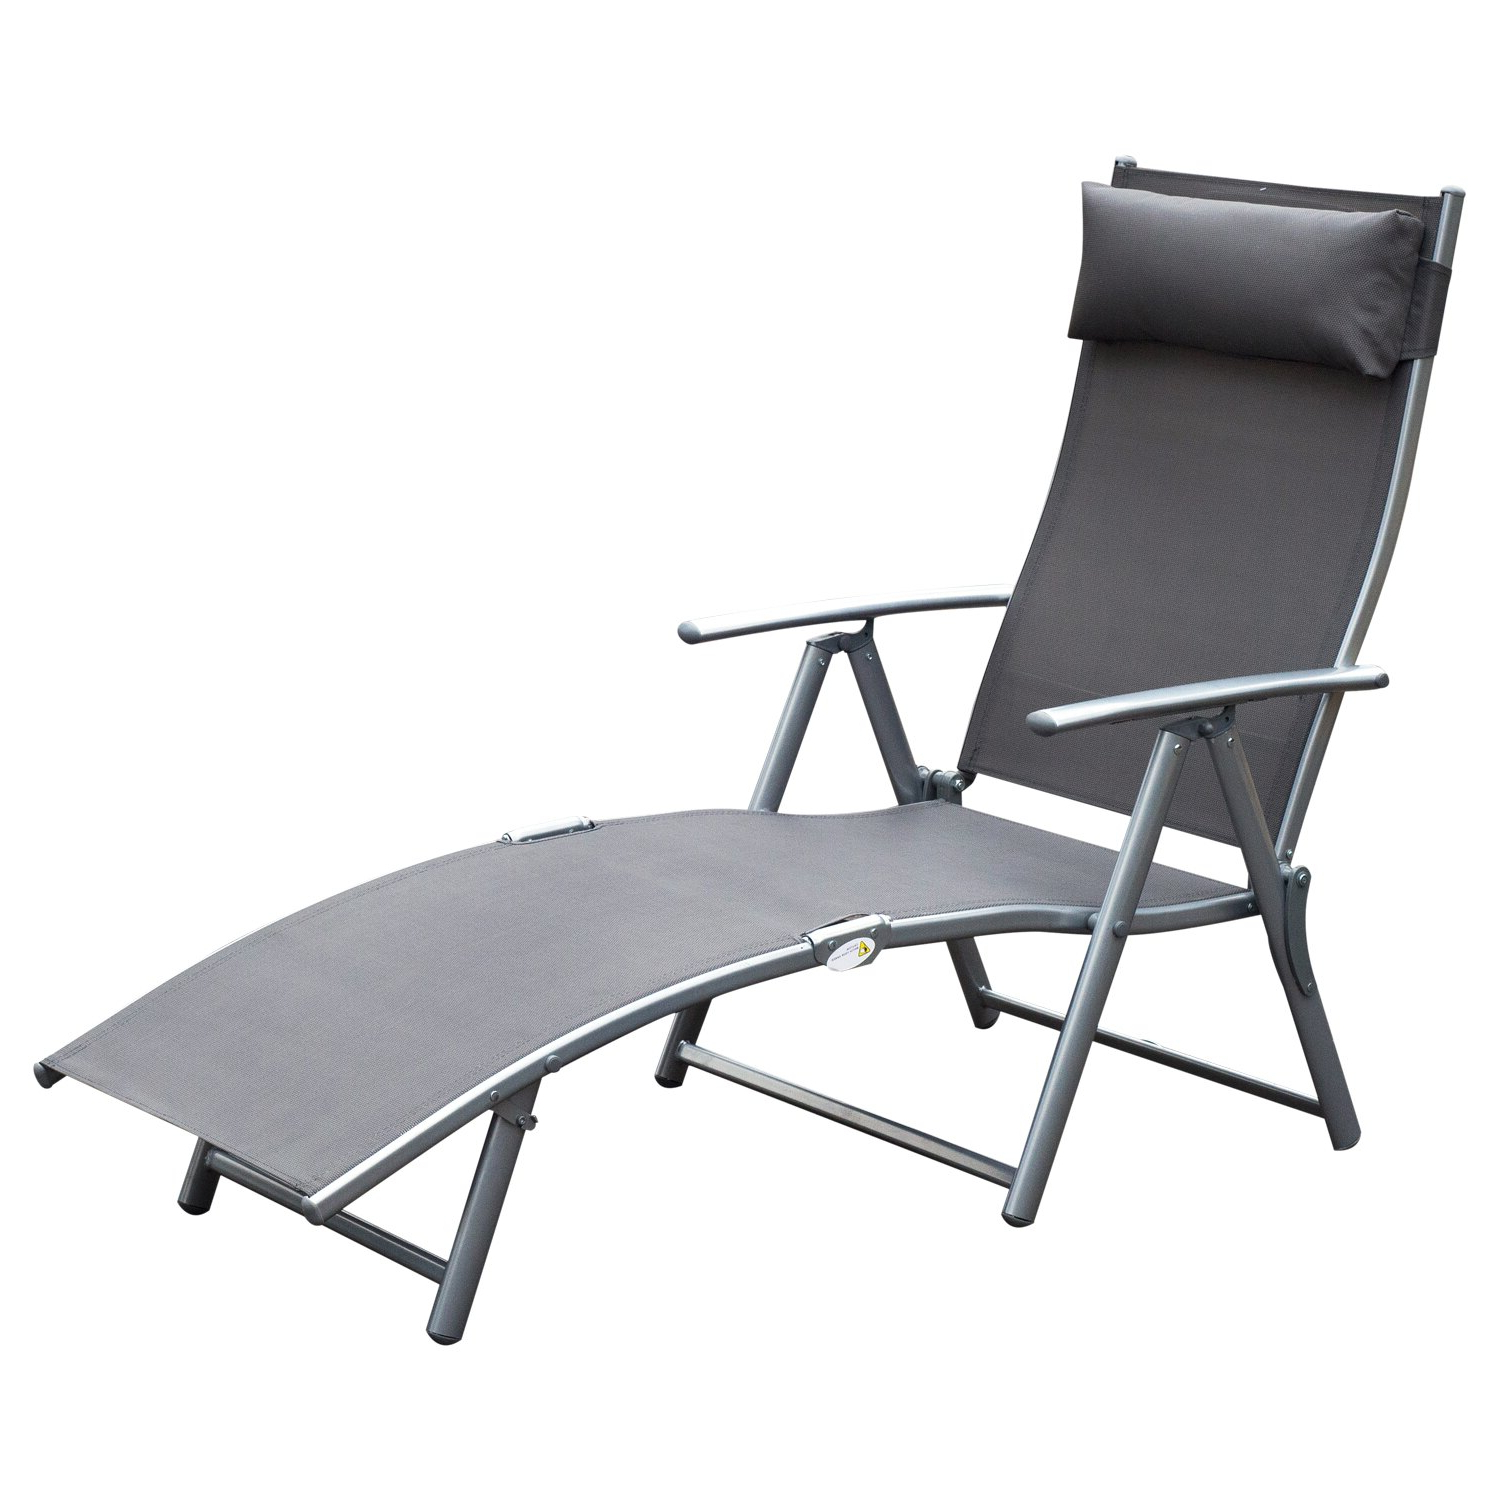 Adjustable Sling Fabric Patio Chaise Lounges Throughout Well Known Aosom: Outsunny Sling Fabric Patio Reclining Chaise Lounge Chair Folding 5 Position Adjustable Outdoor Deck With Cushion – Gray (View 13 of 25)